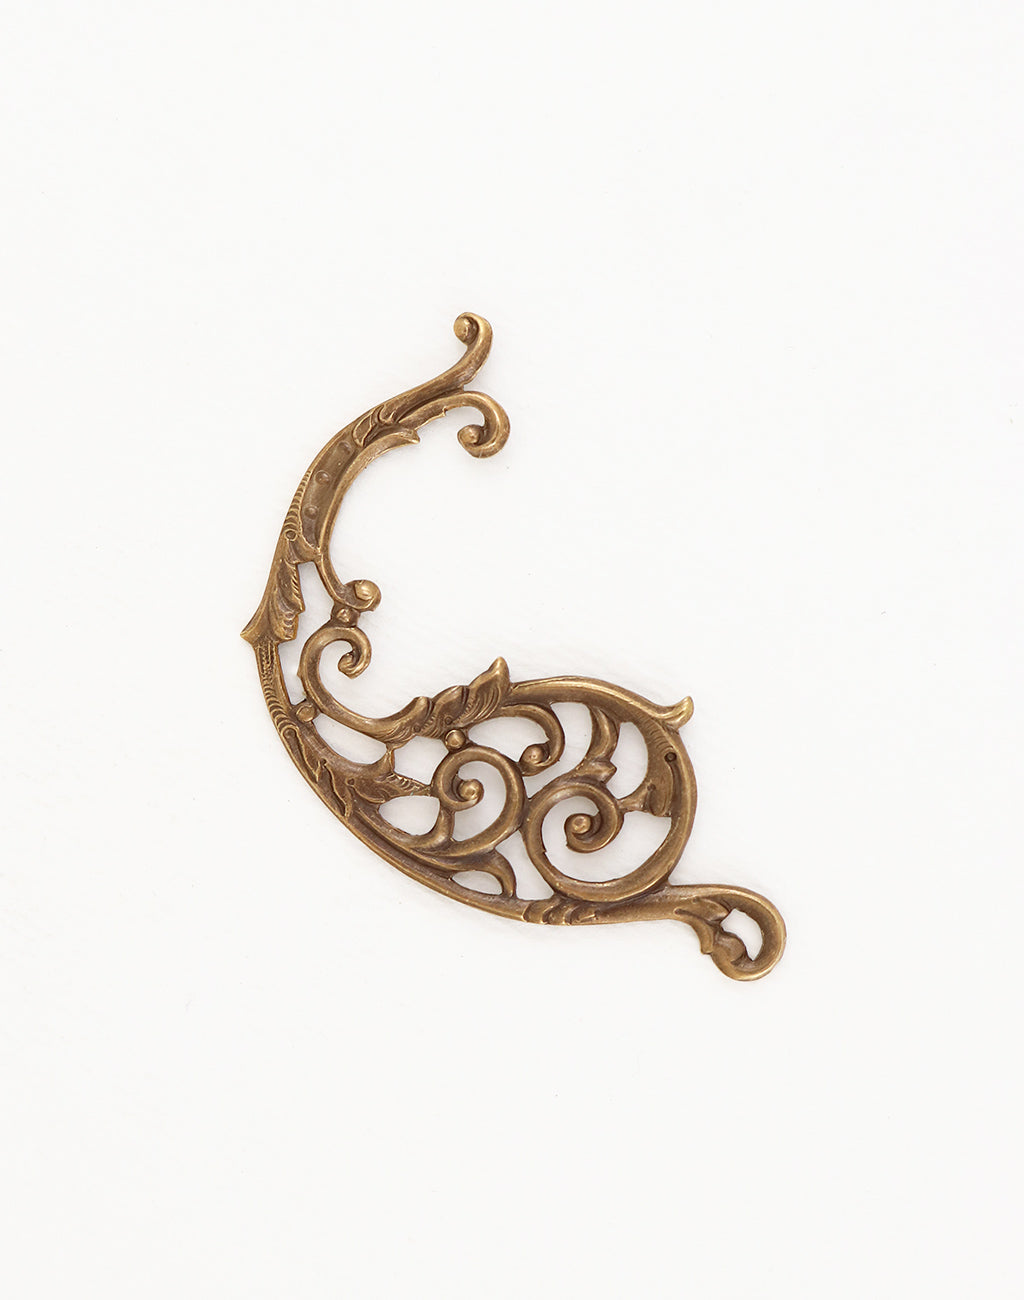 Deco Filigree, 46x21mm, (1pc)